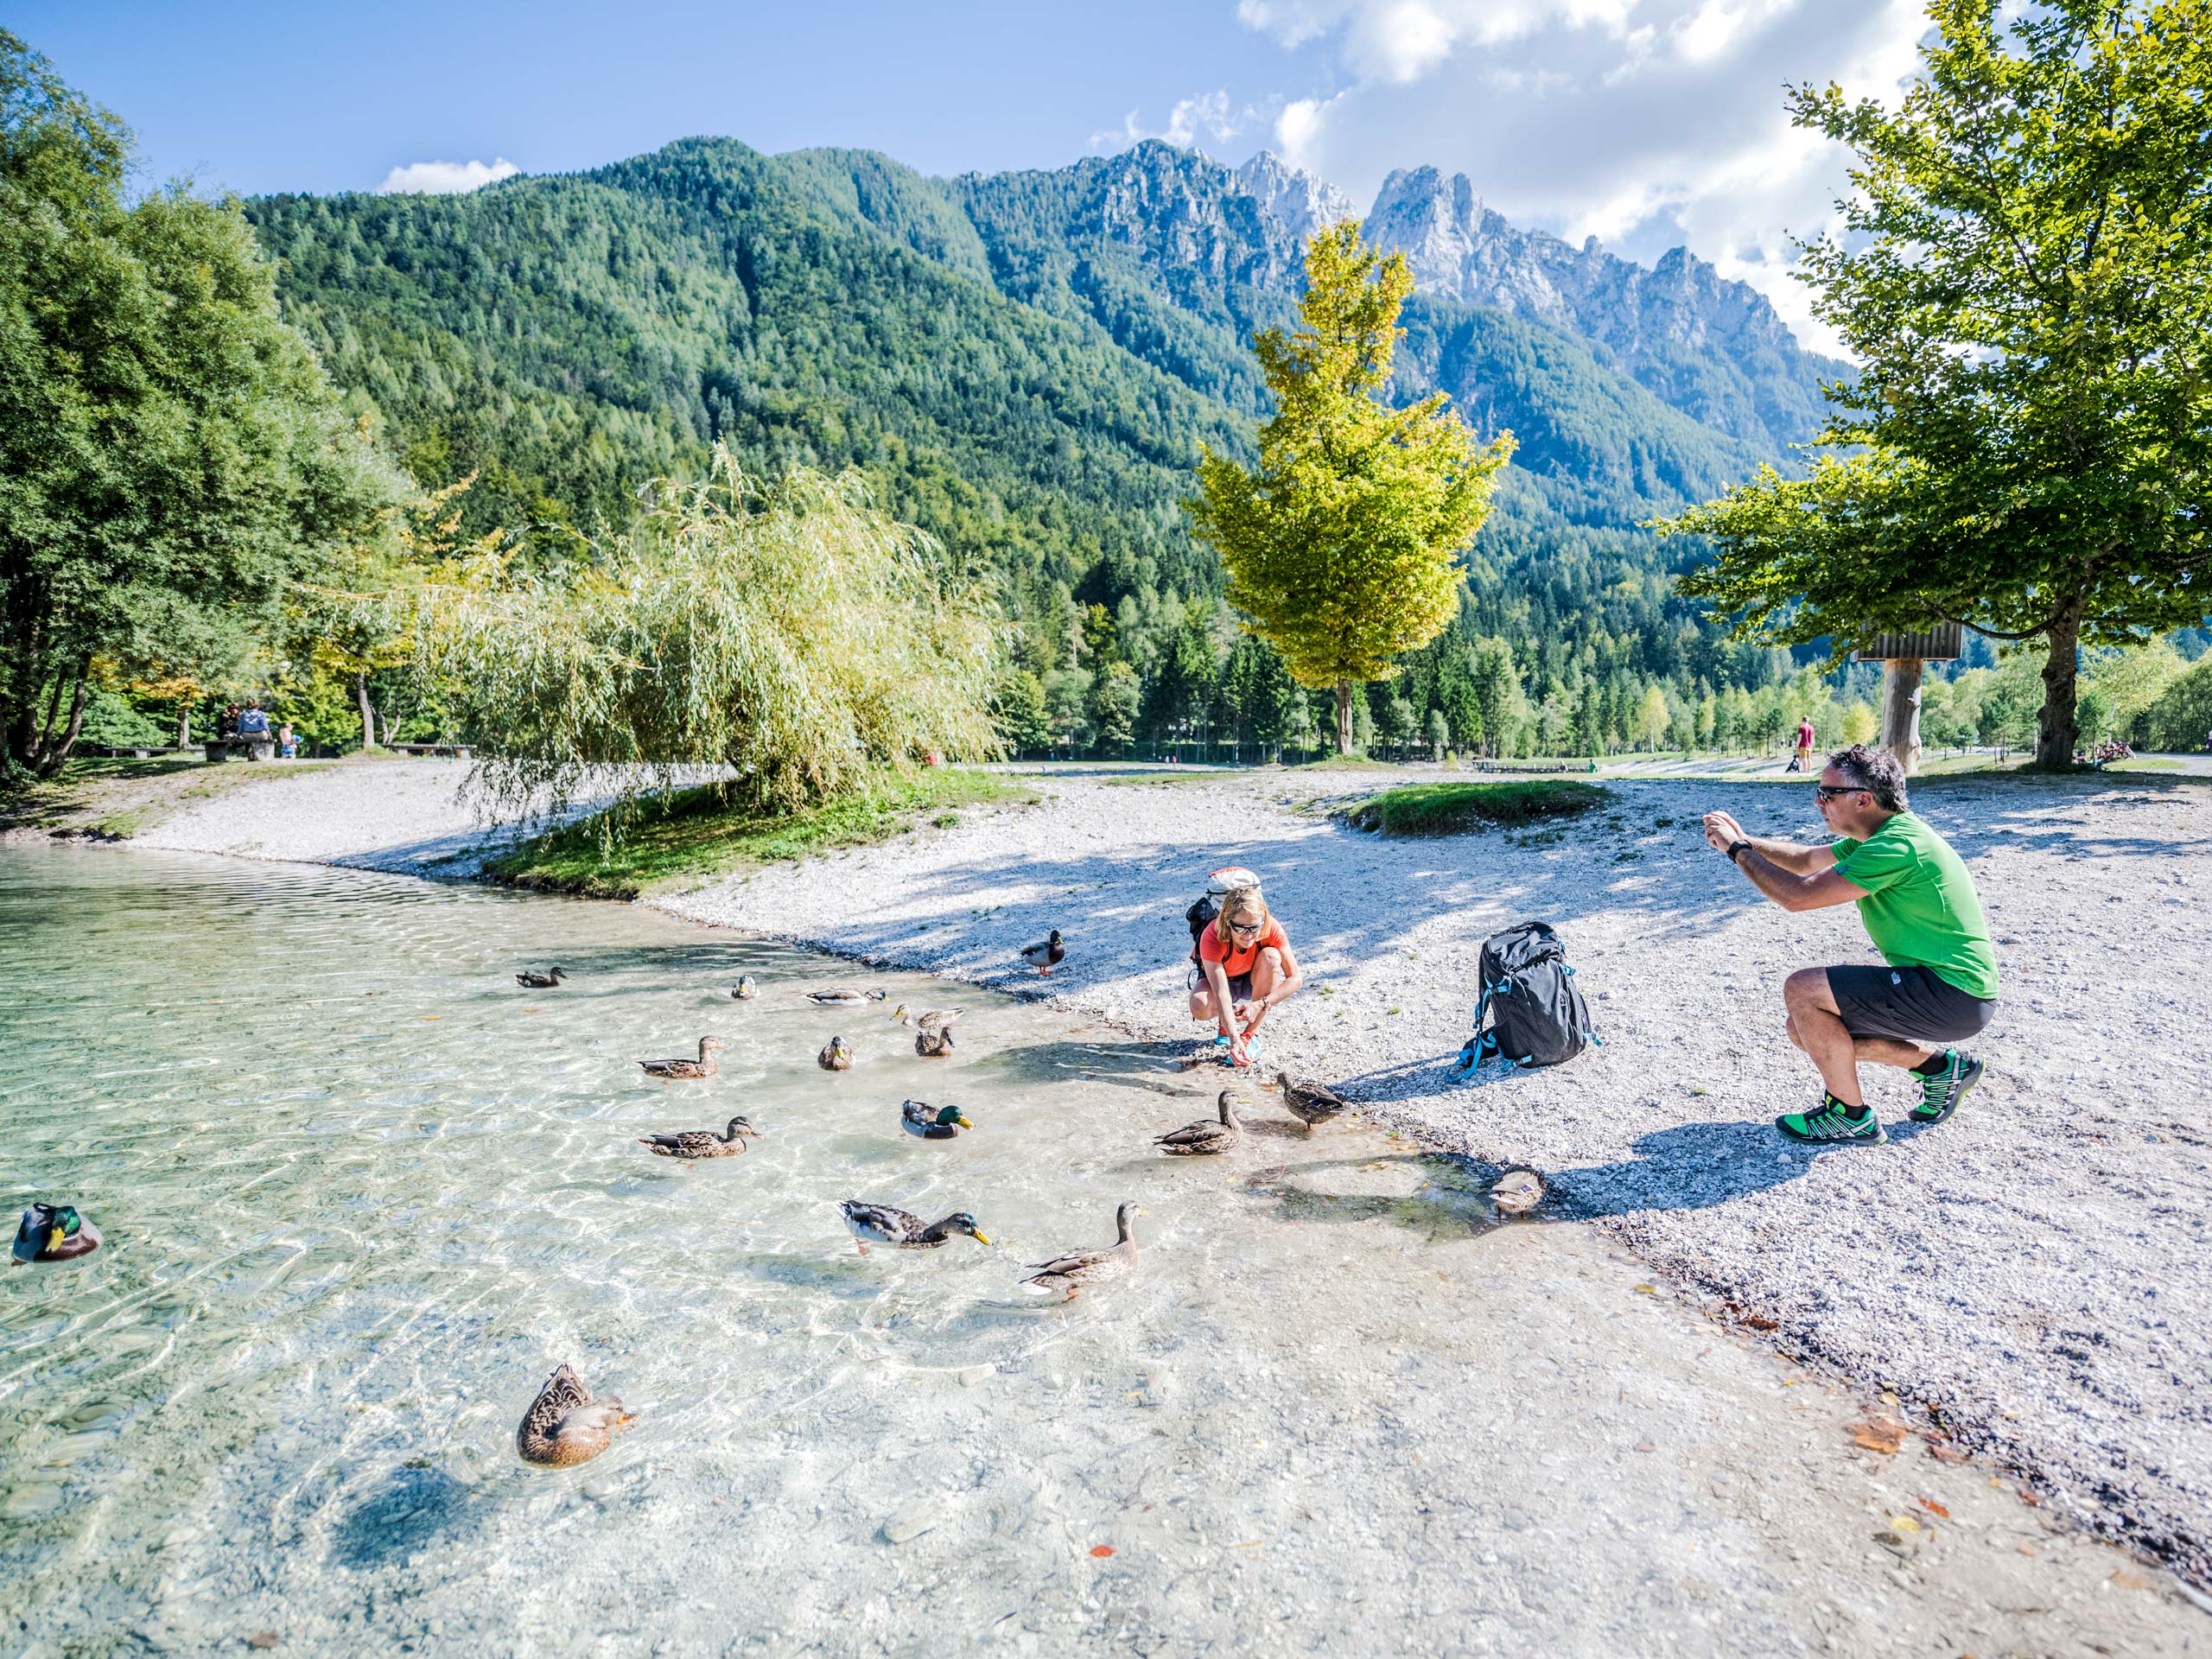 Tourists feed ducks by the river